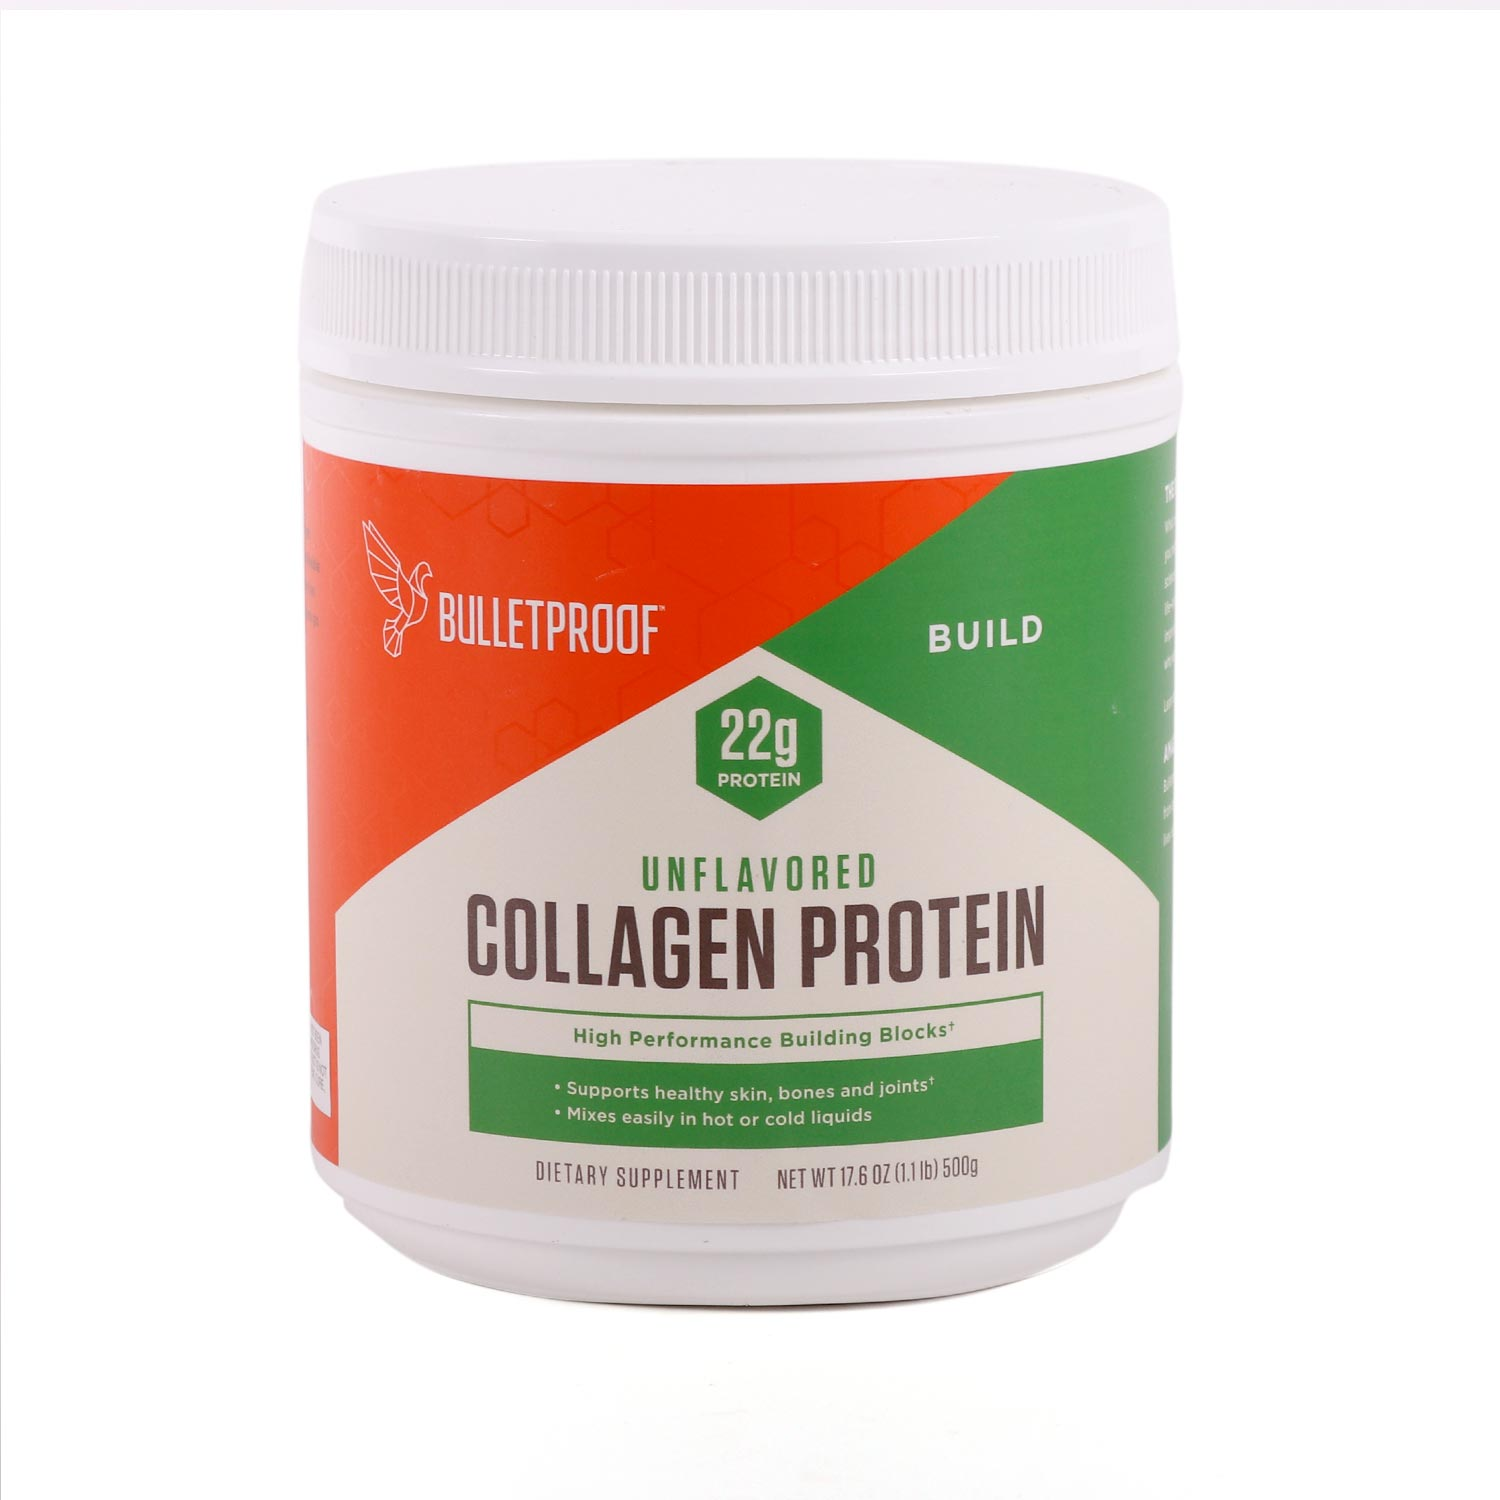 Collagen Protein, Unflavored